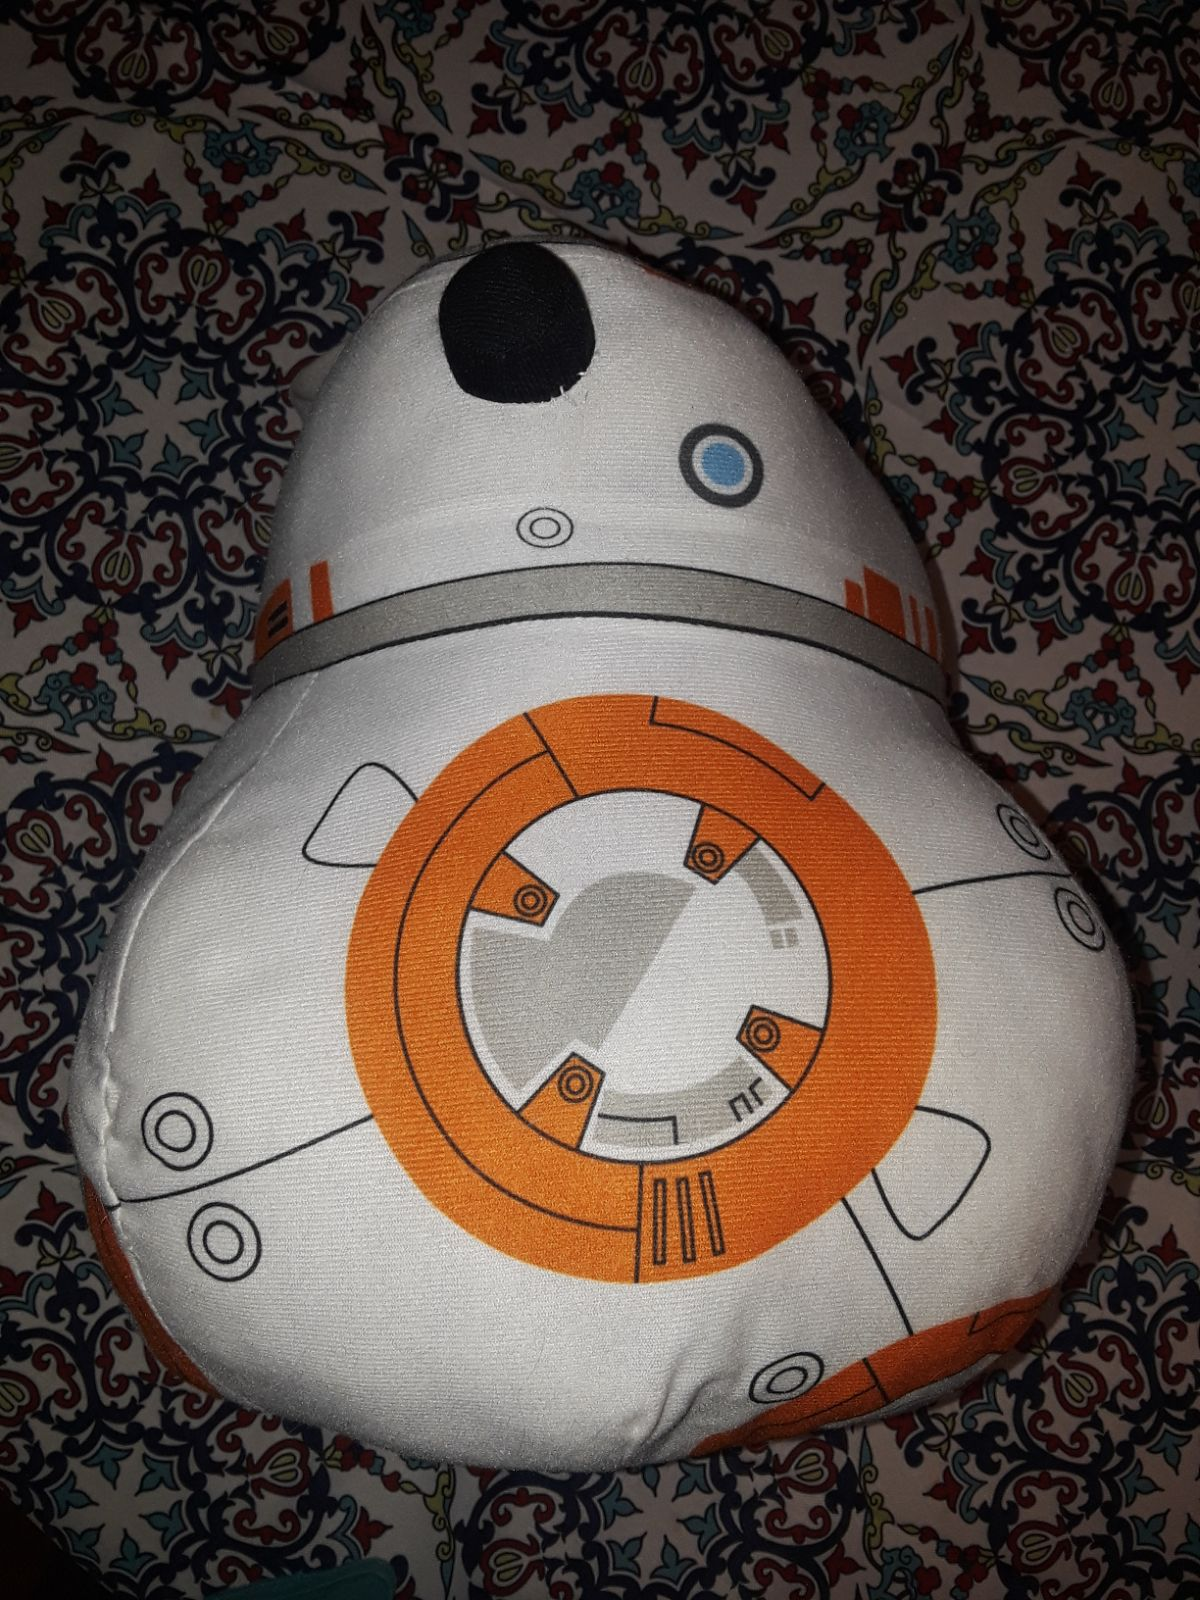 Star Wars BB8 Basket Easter Basket